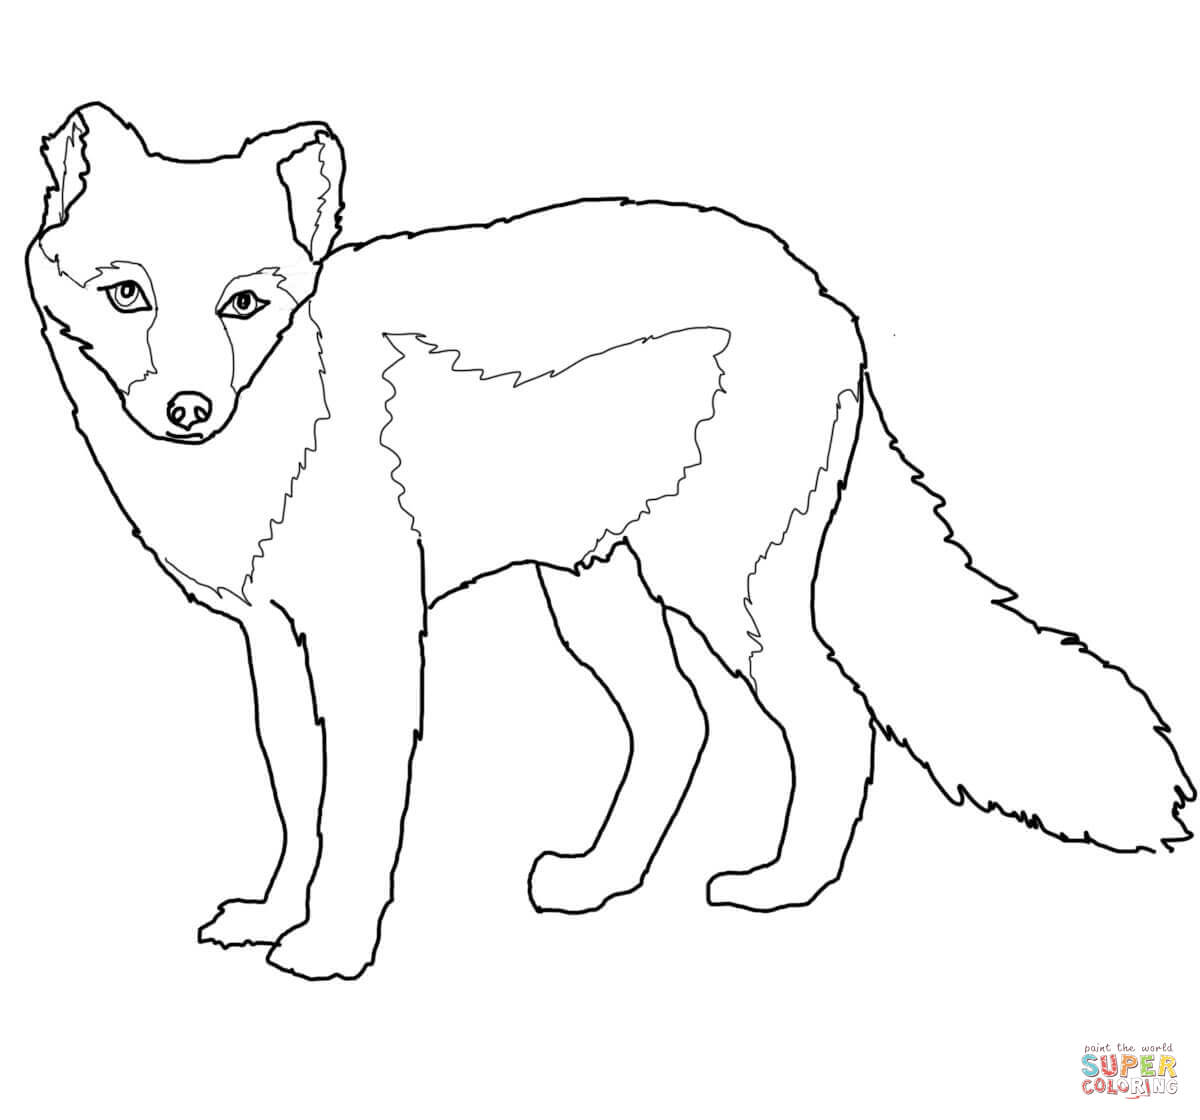 arctic fox coloring pages arctic fox coloring pages coloring pages to download and arctic coloring pages fox